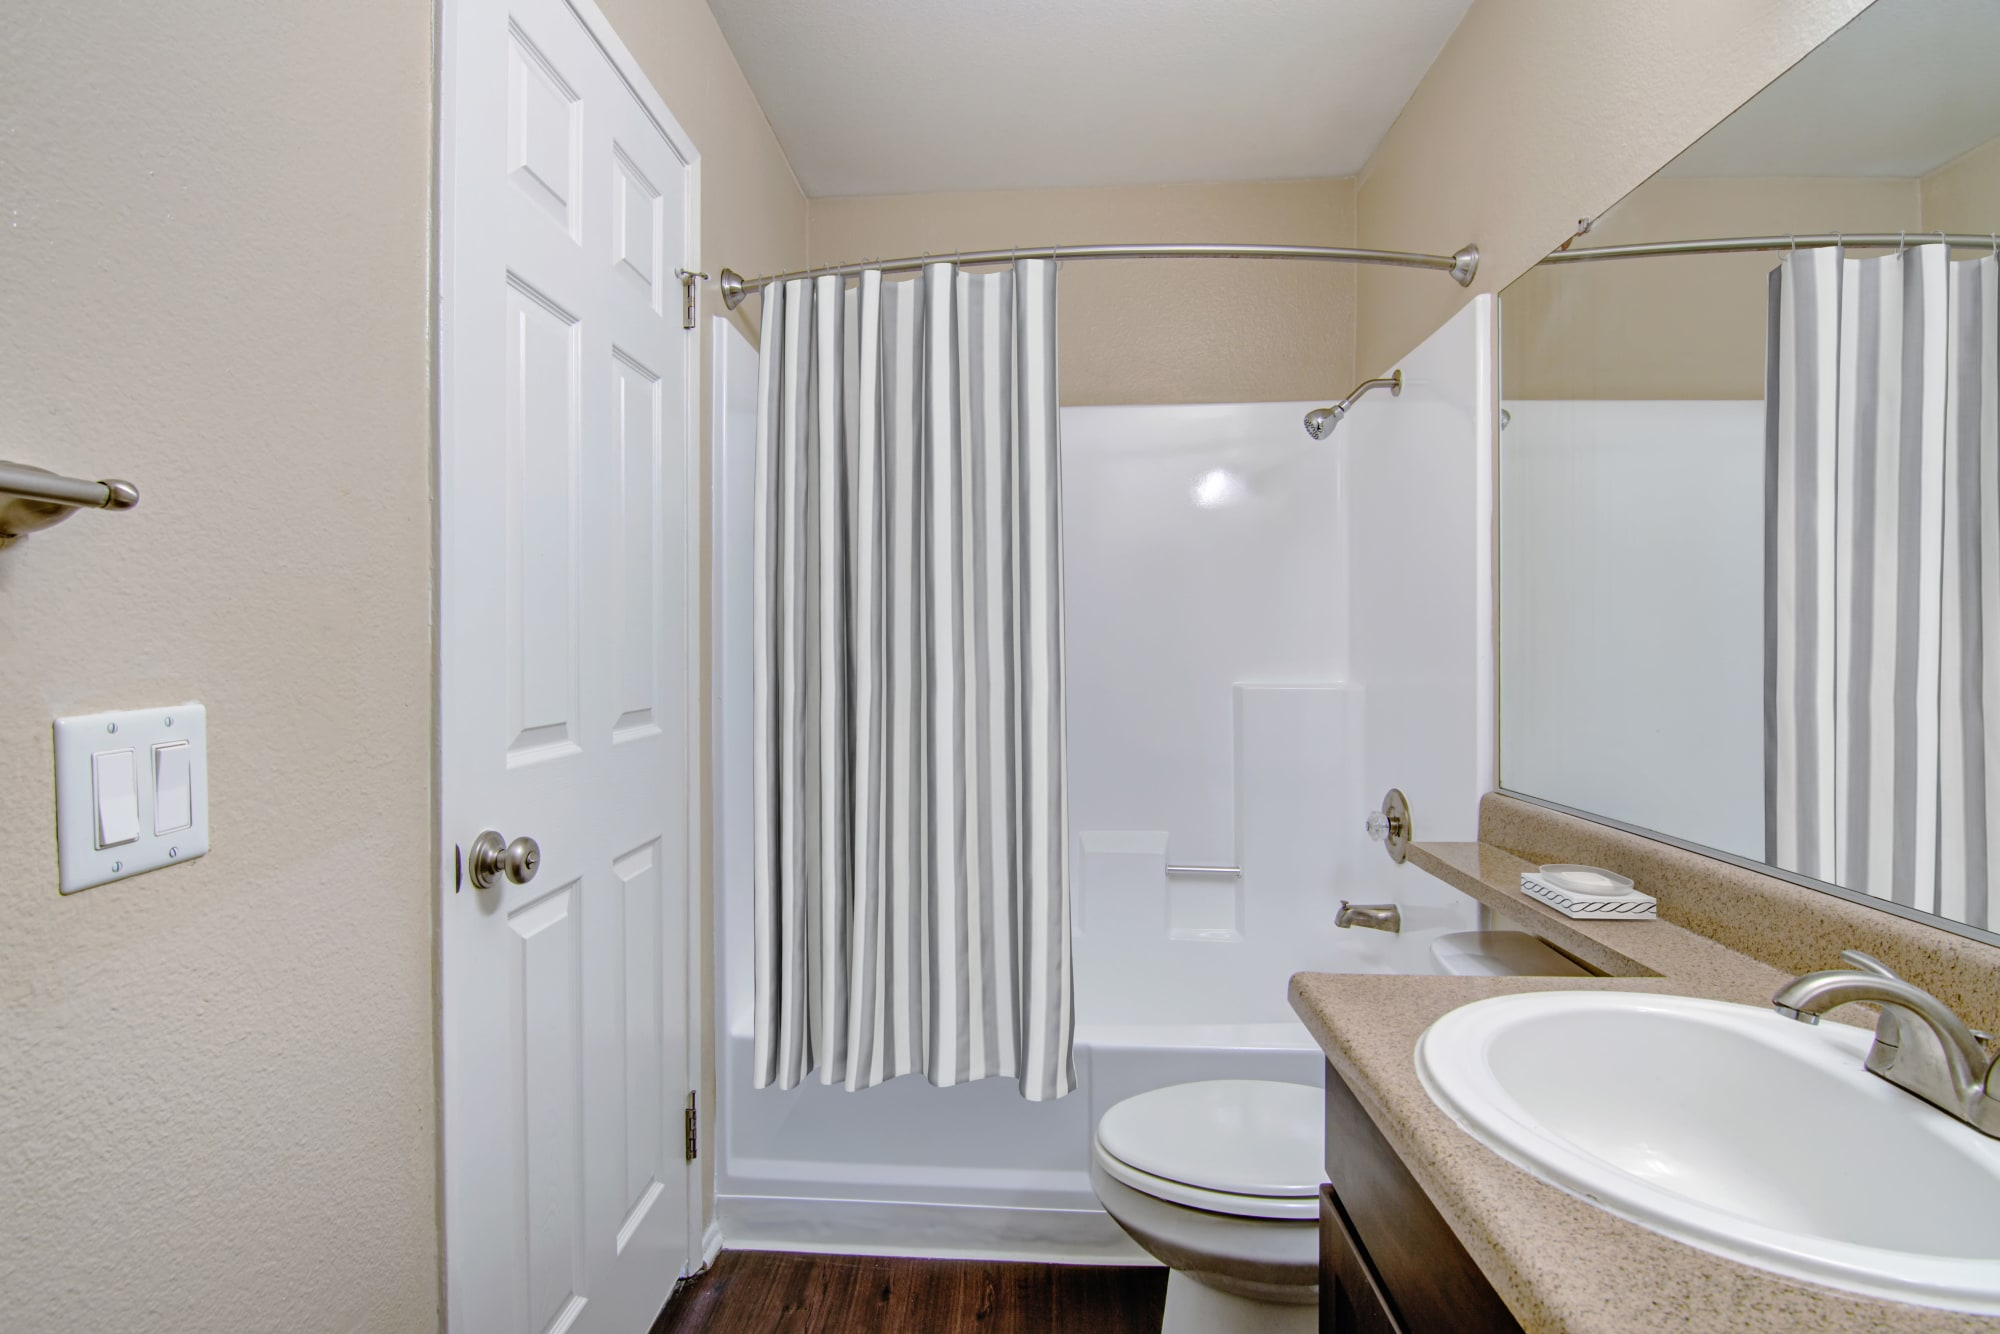 A renovated bathroom with brown cabinets at Hillside Terrace Apartments in Lemon Grove, California